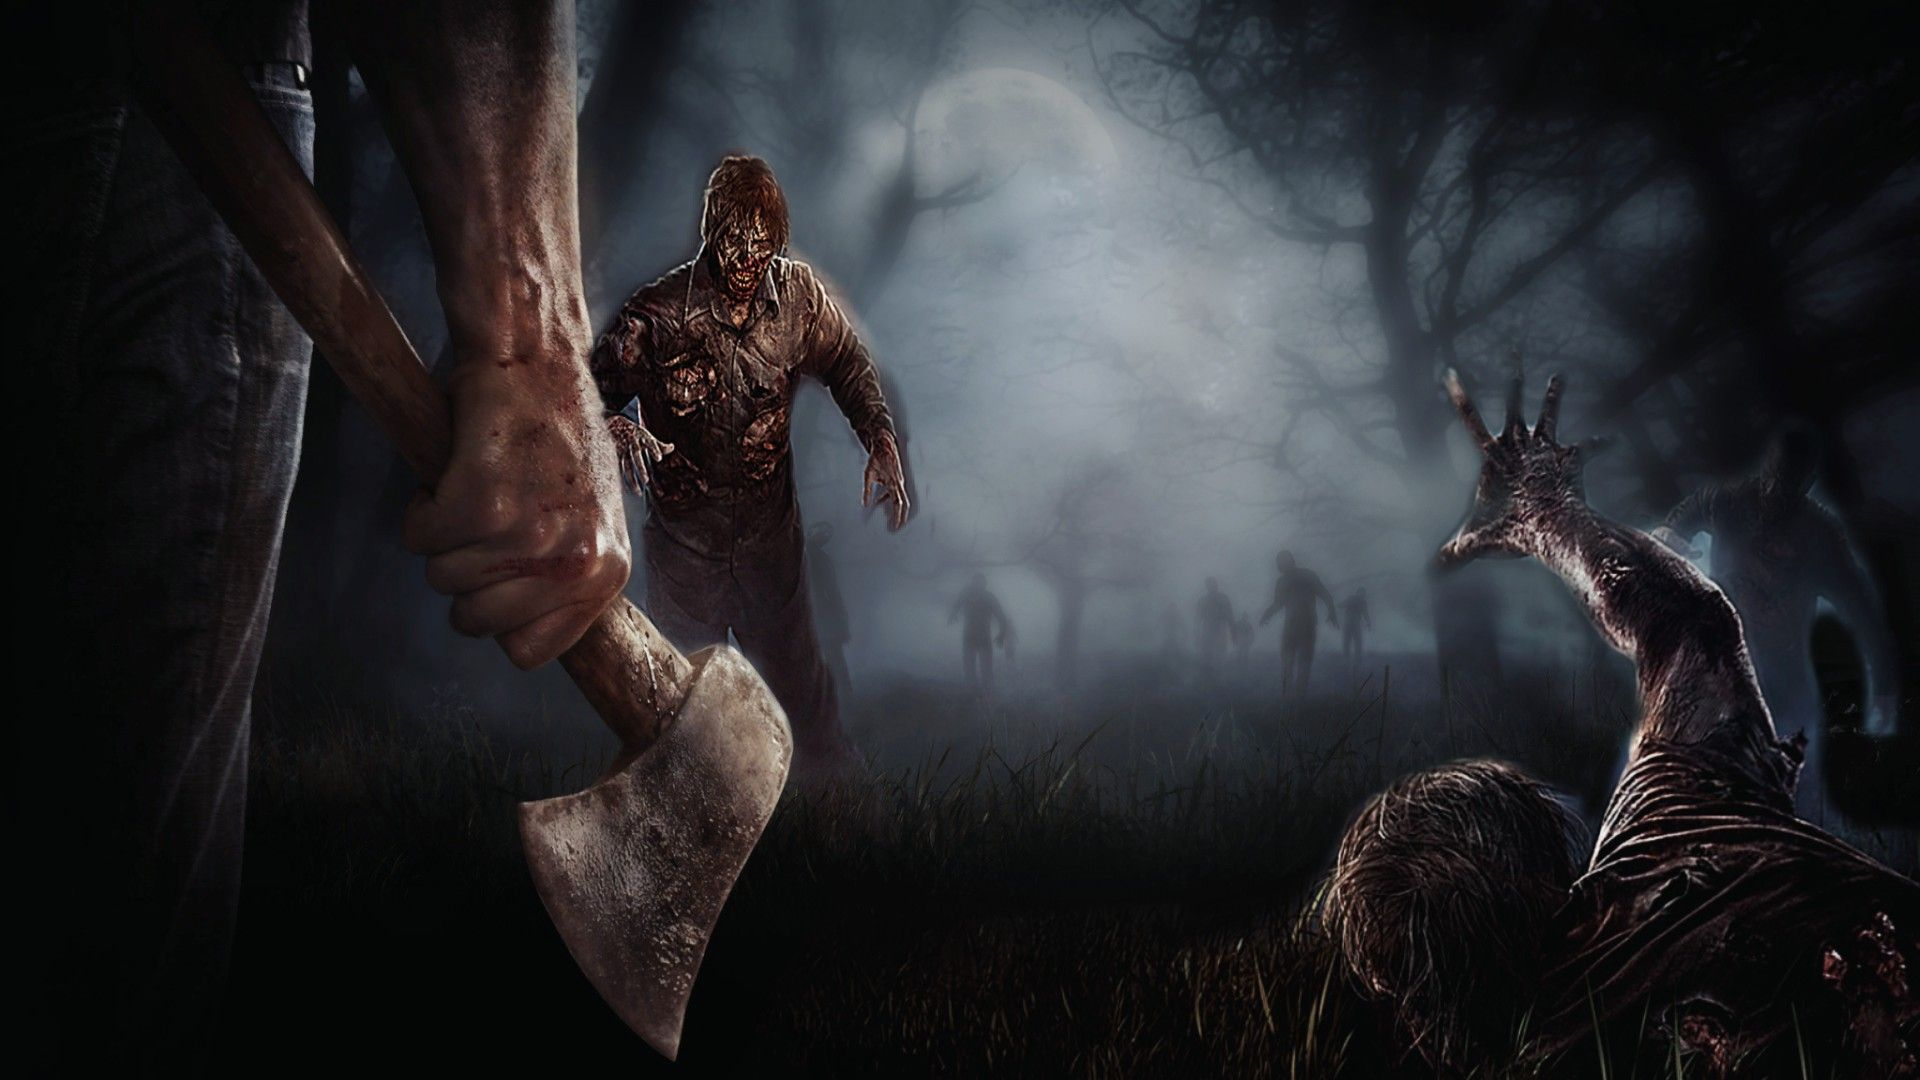 Zombie Battle Royale Game H1z1 Changes Its Name Again Battle Royale Game Battle Video Games Ps4